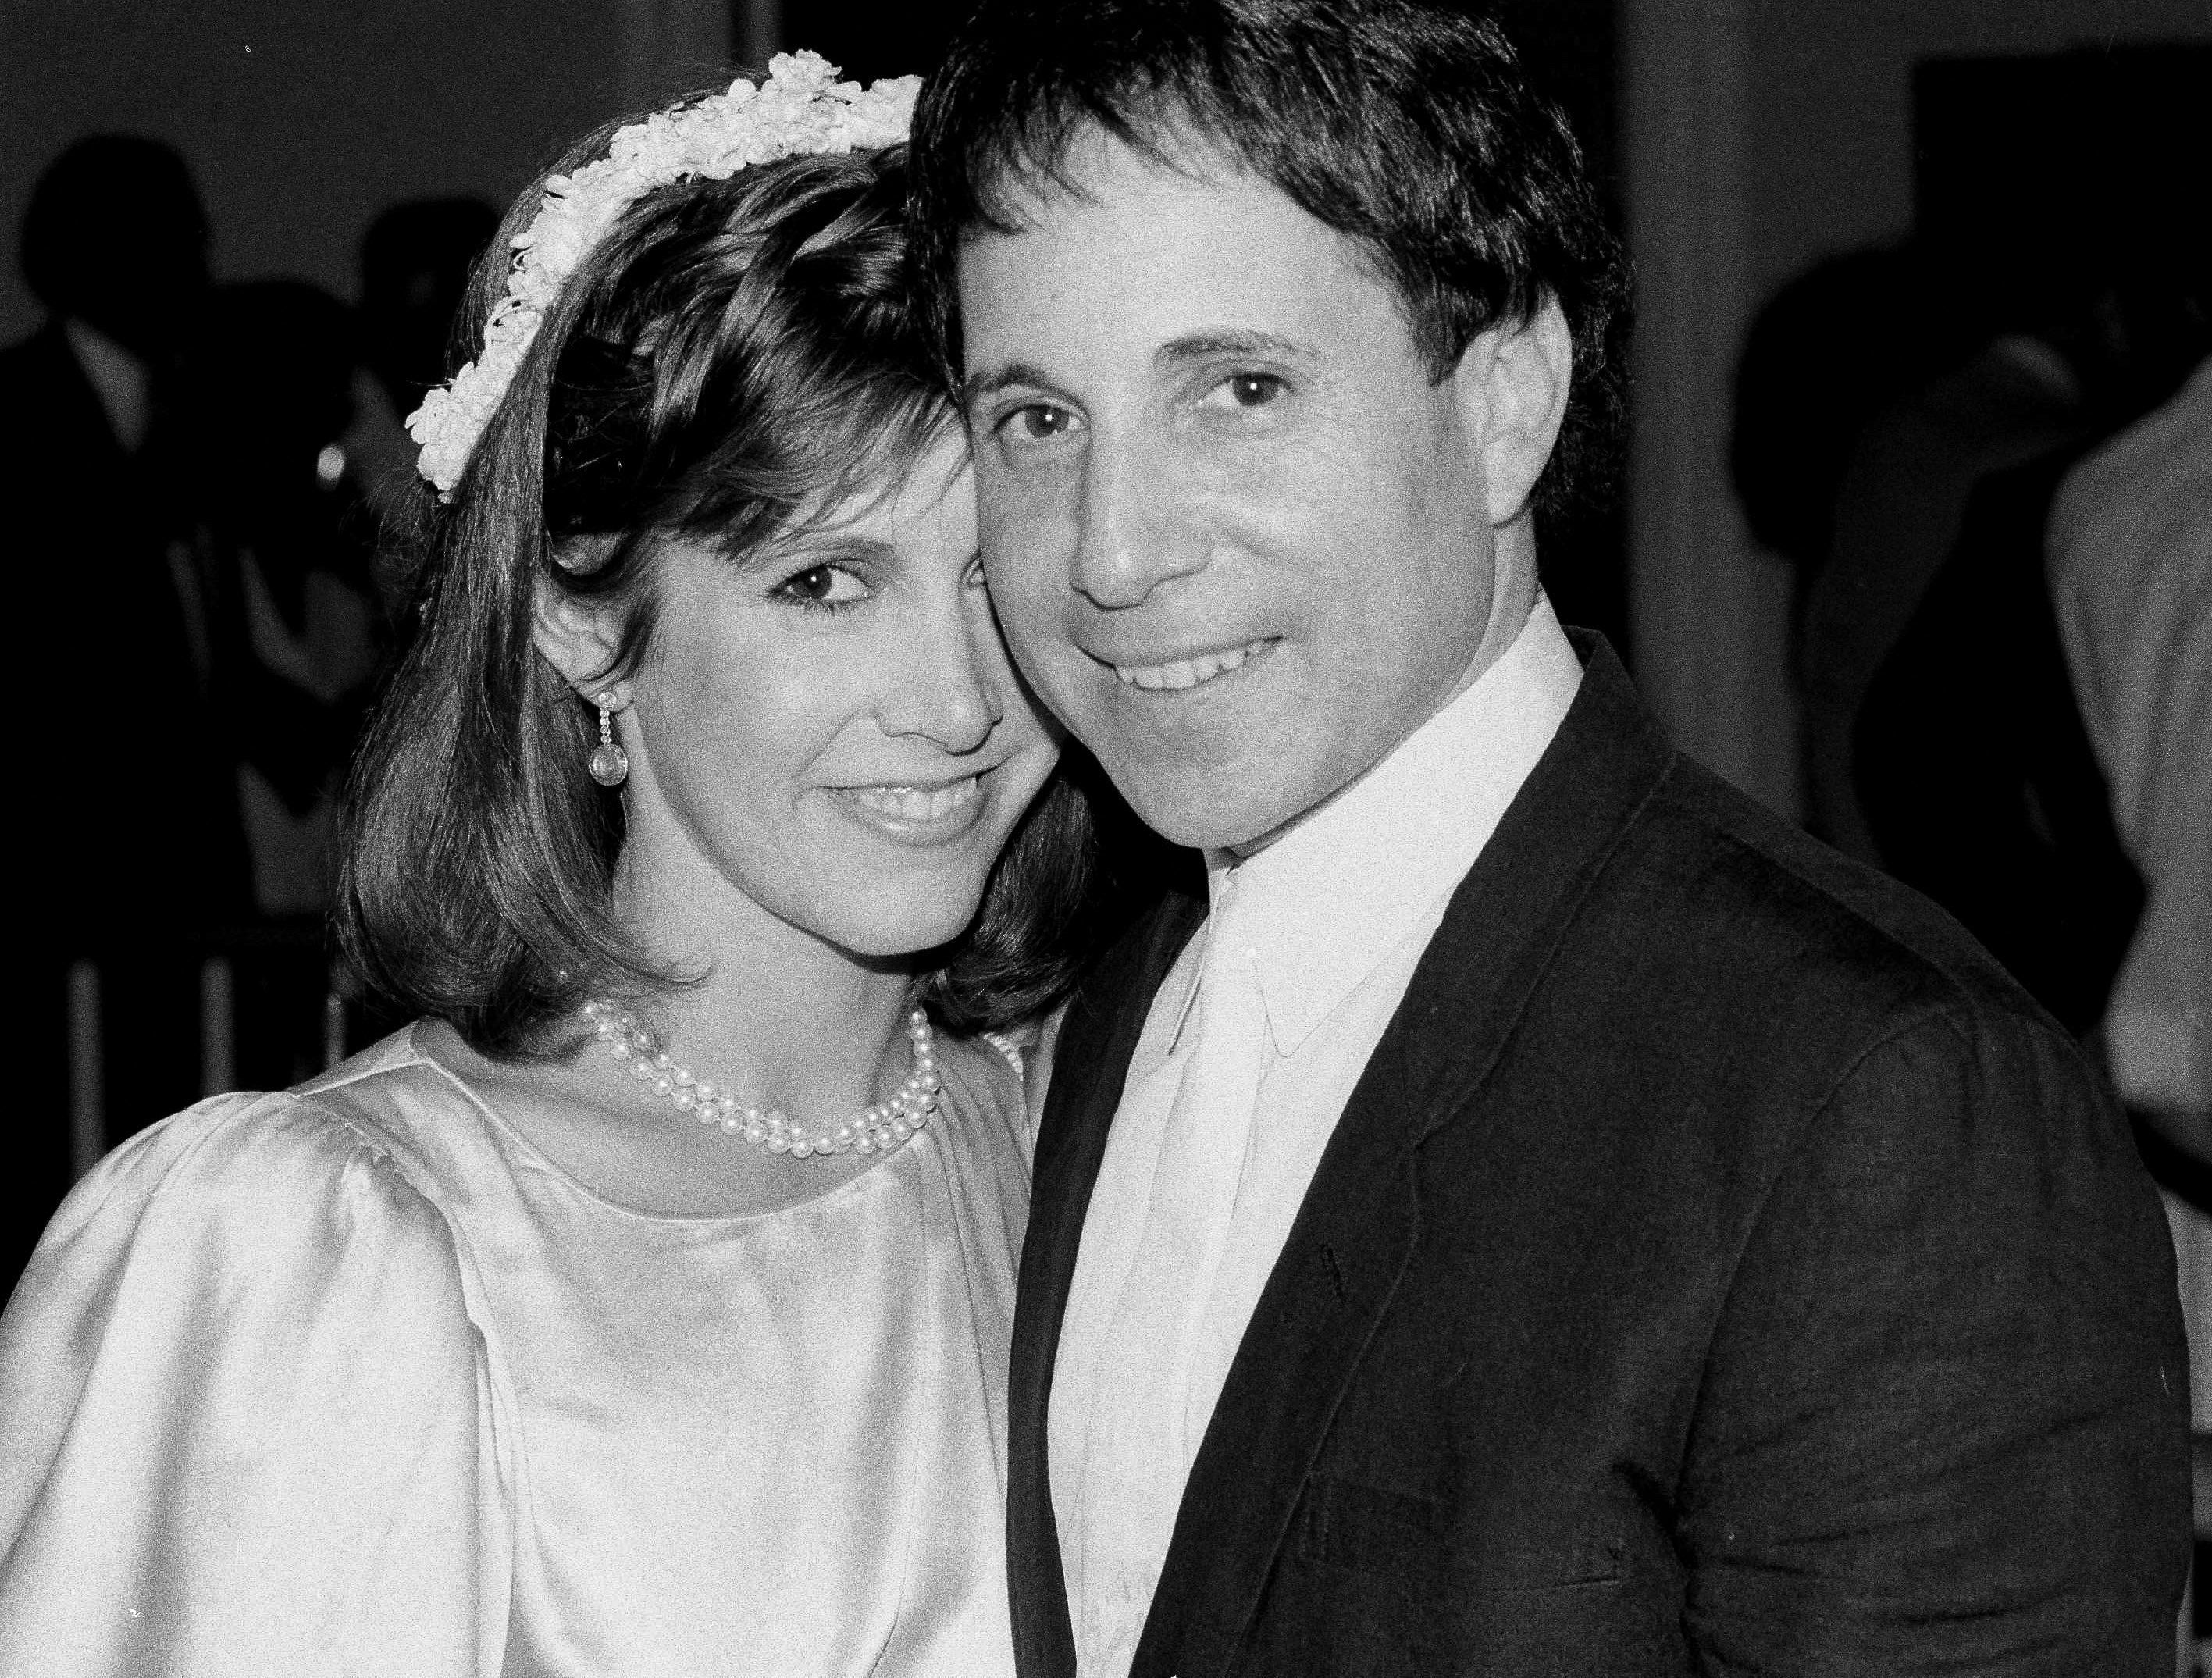 Carrie Fisher and Paul Simon pose together in1983.